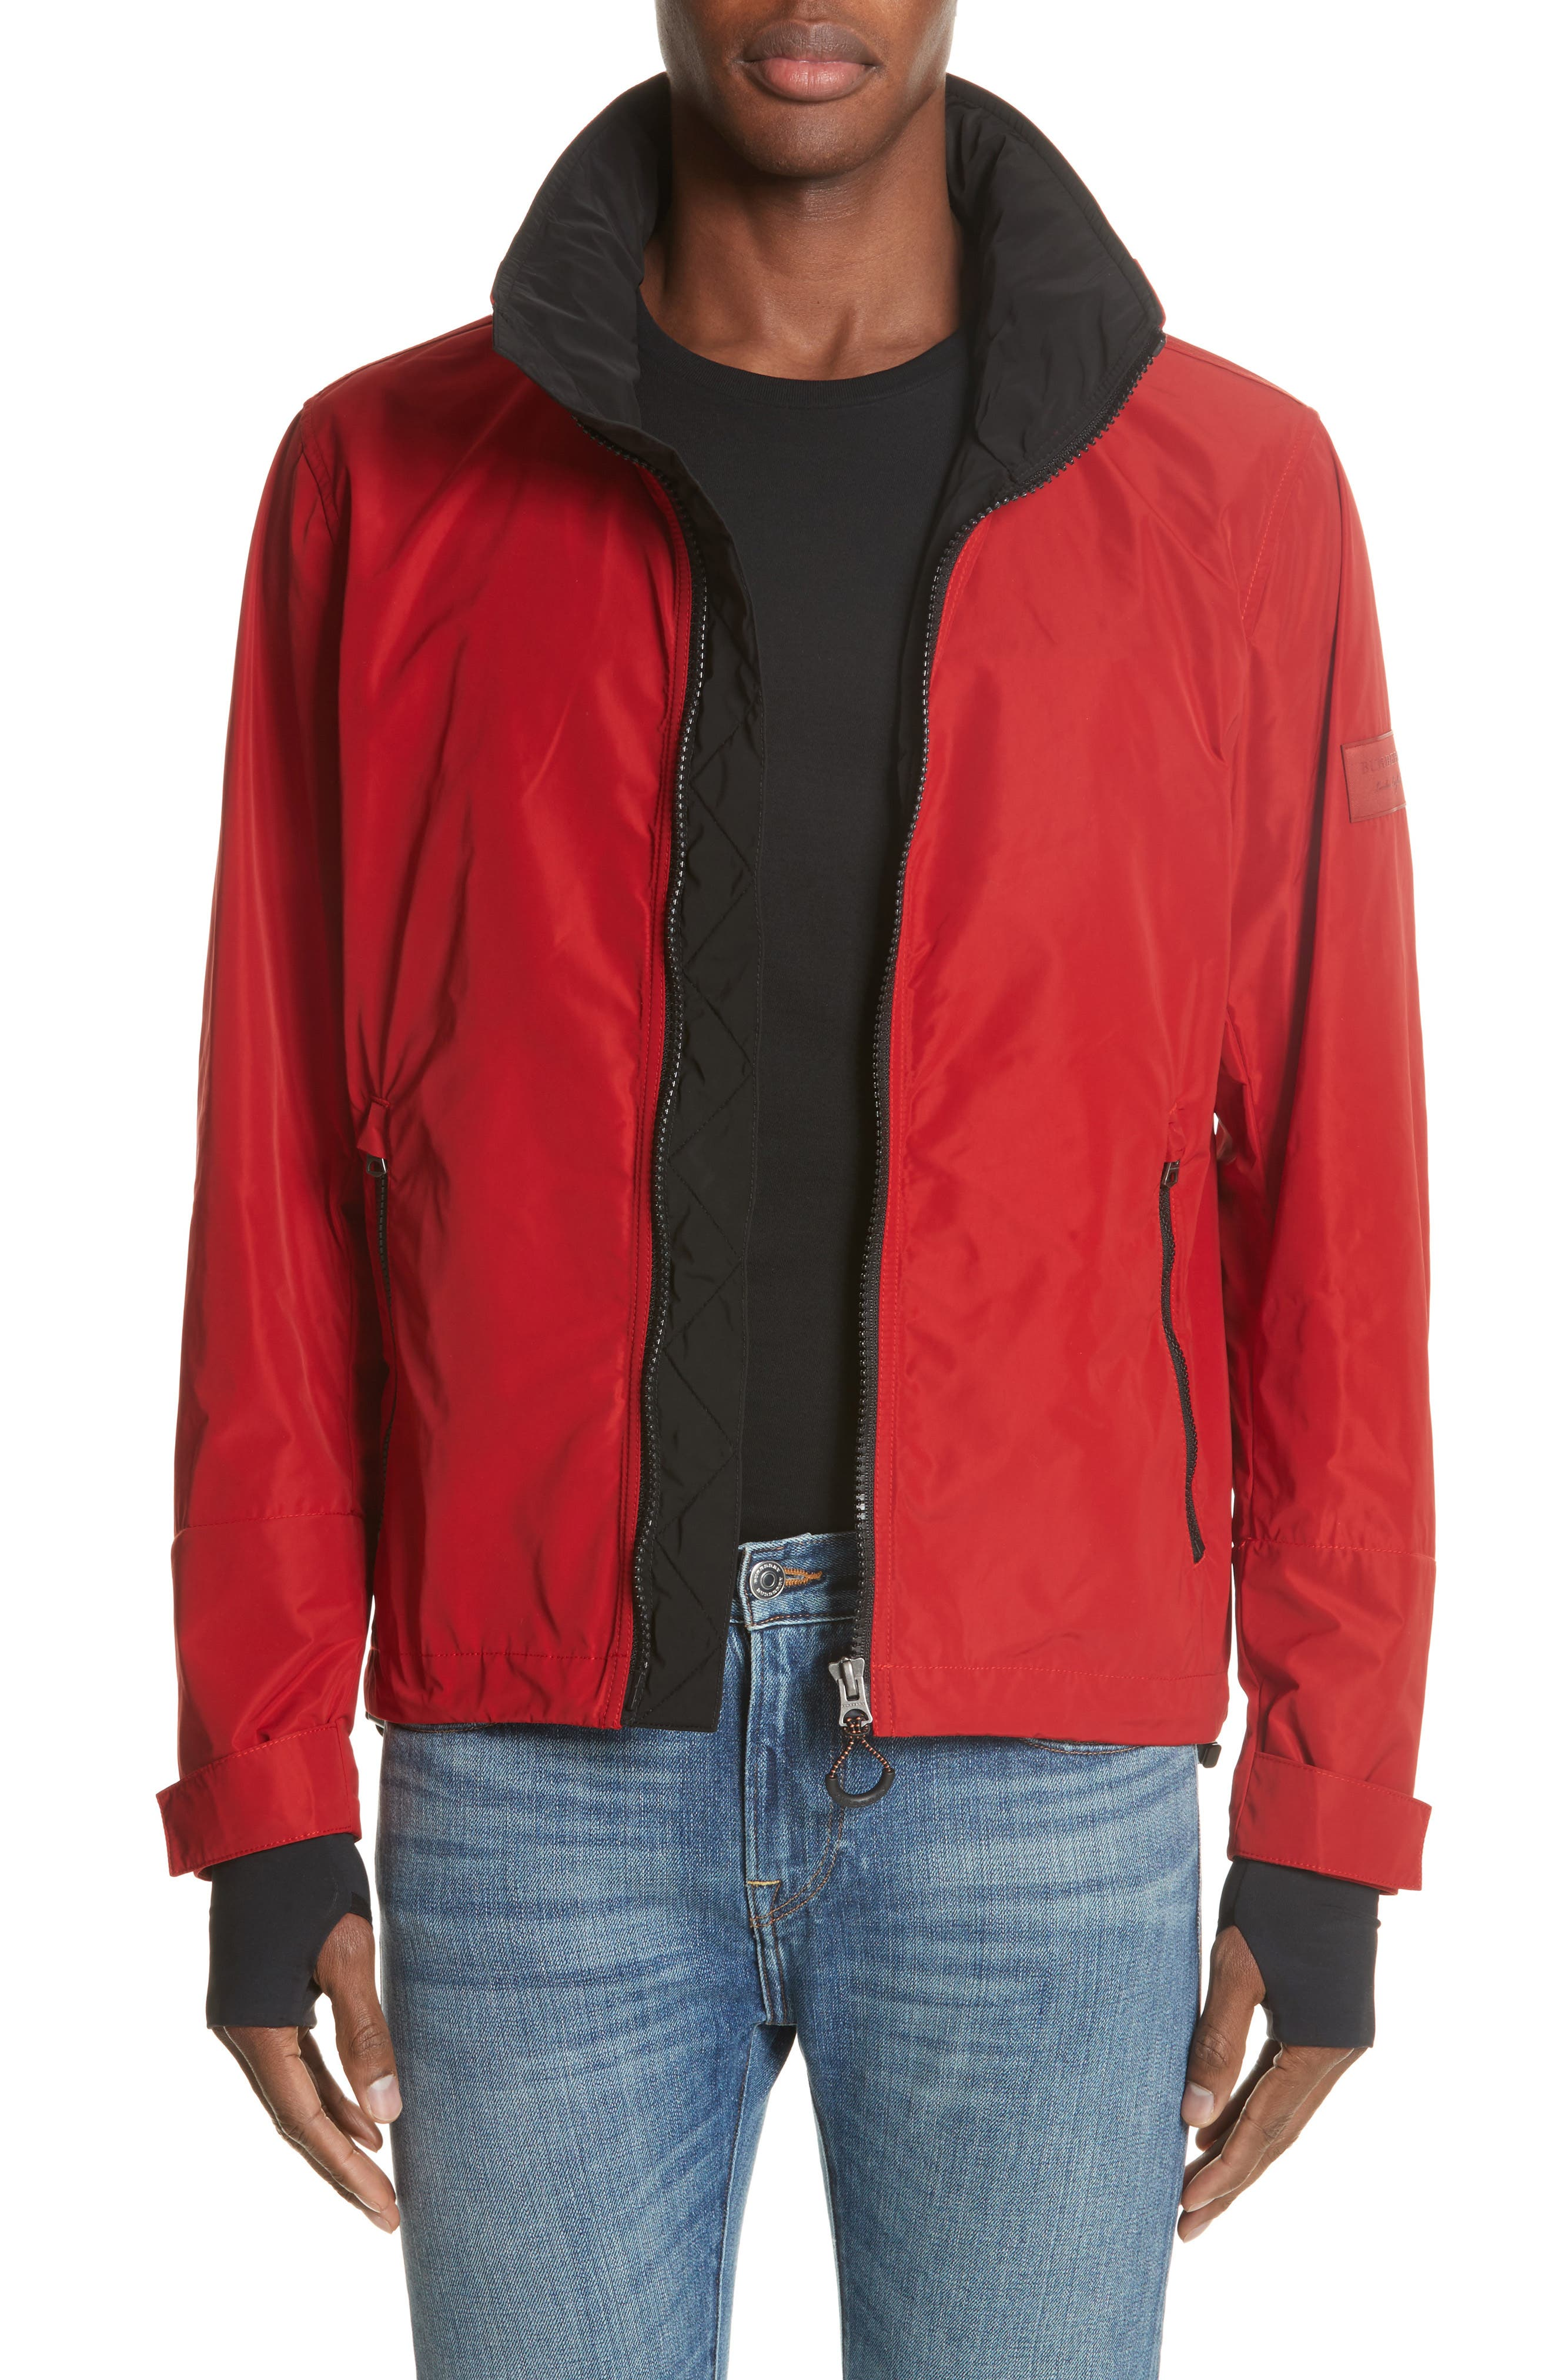 Headson Standard Fit Jacket,                         Main,                         color,